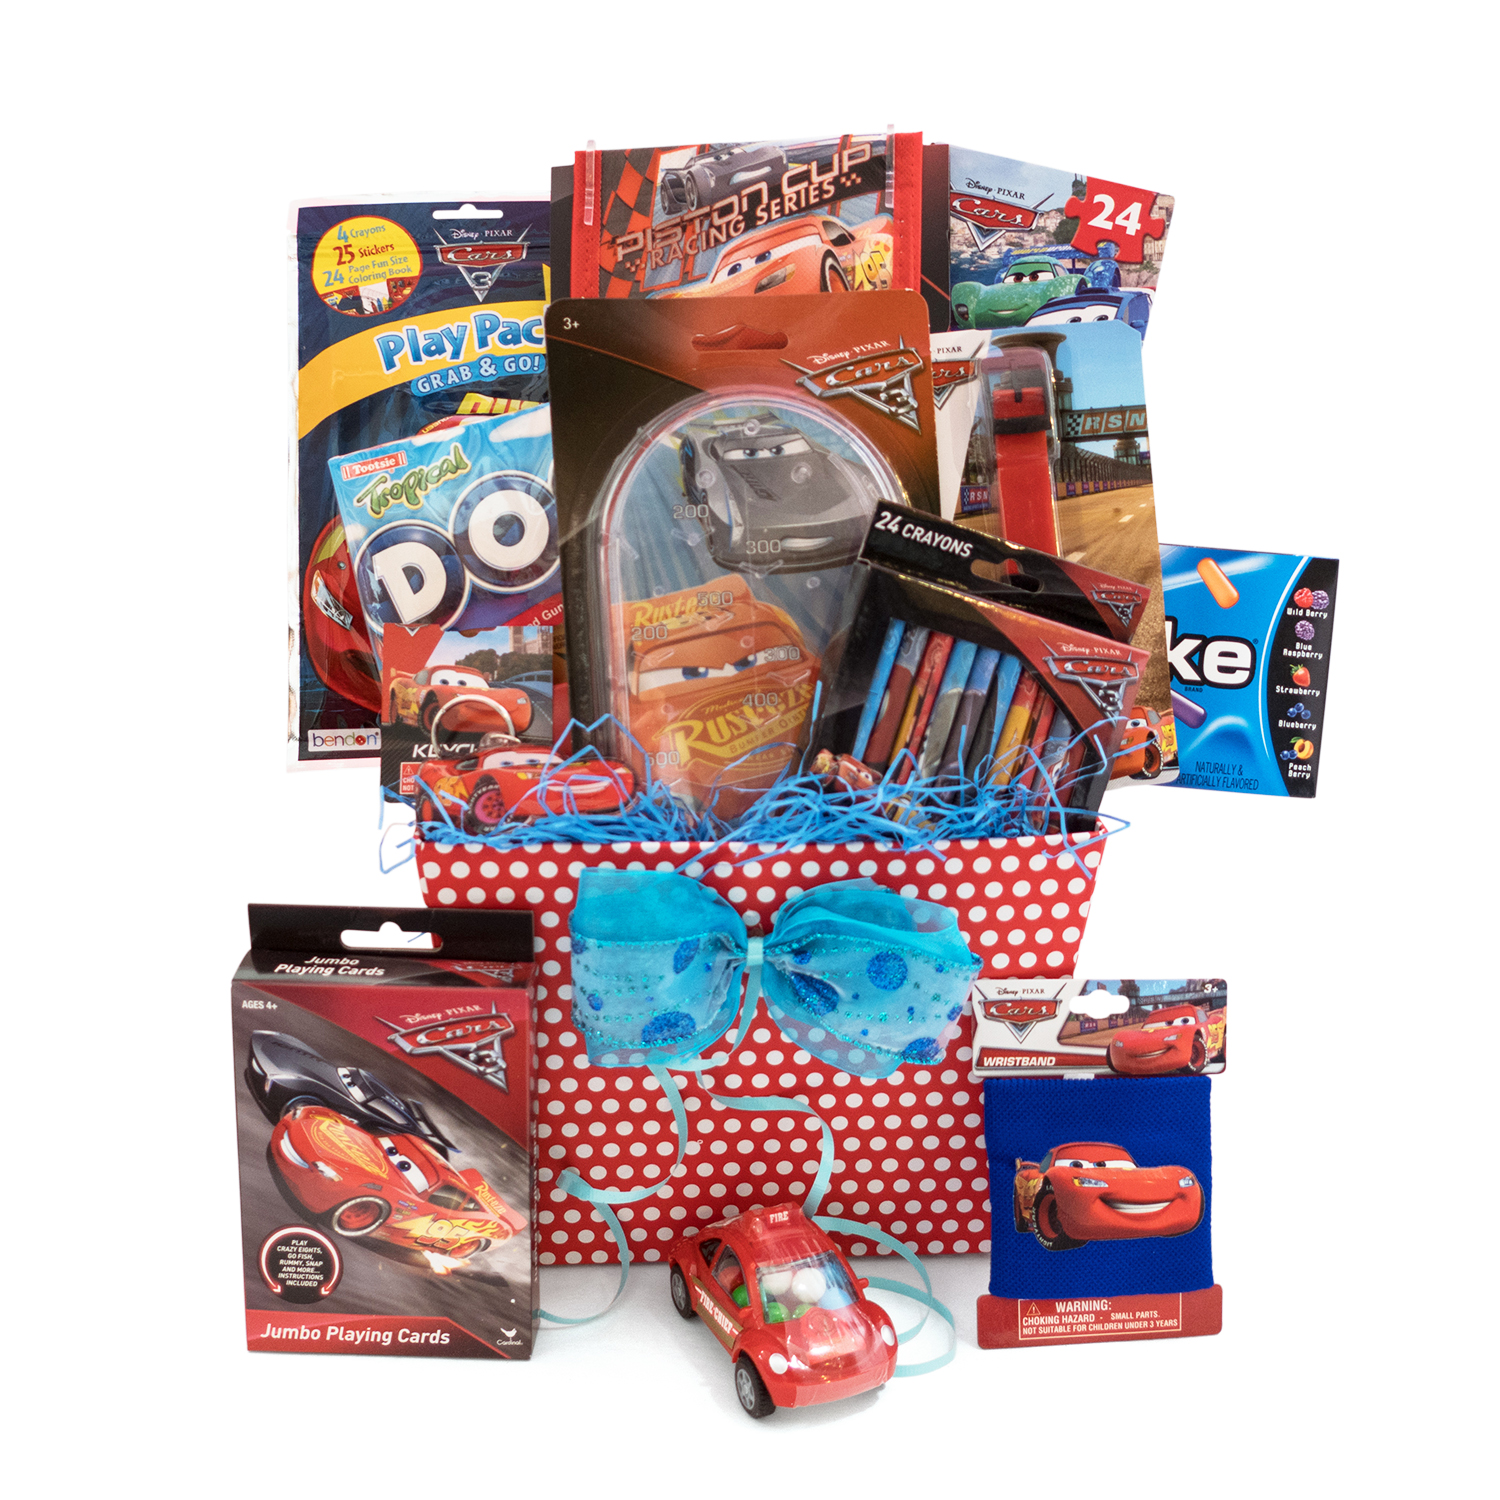 Disney PixarGift Baskets for Kids Boys and Girls 3 to 8 Years Old